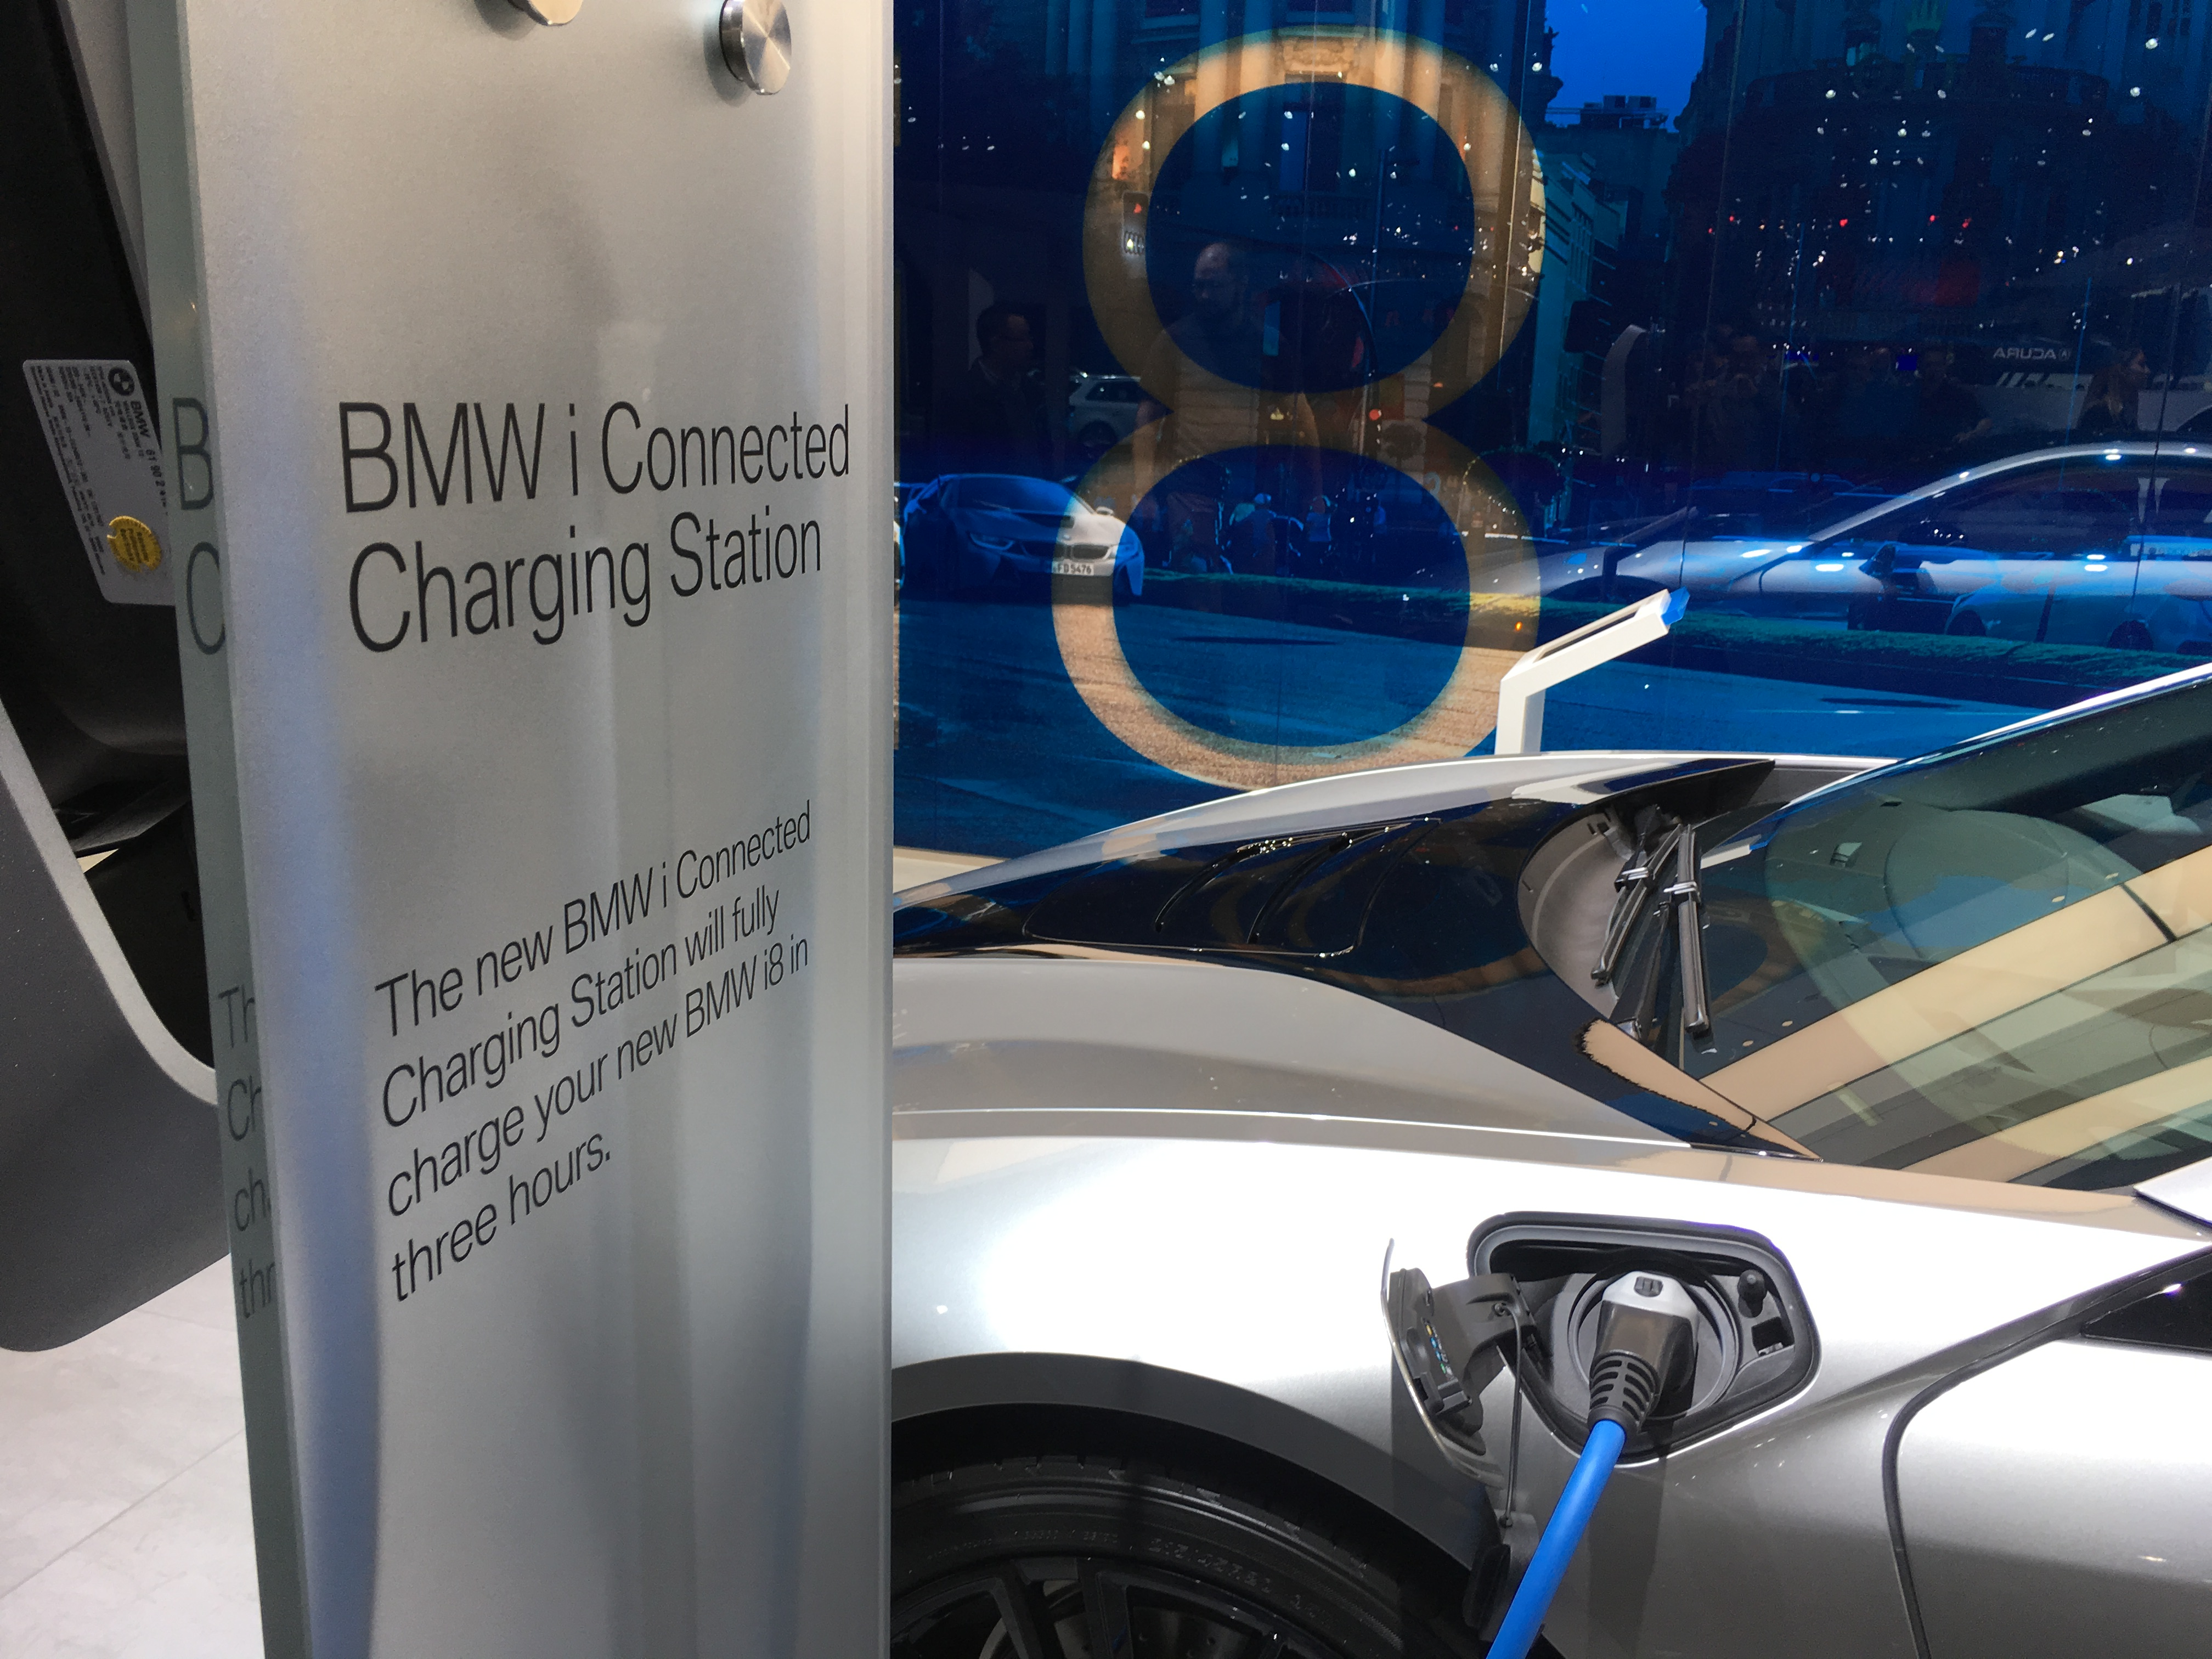 BMW electric vehicle charging station